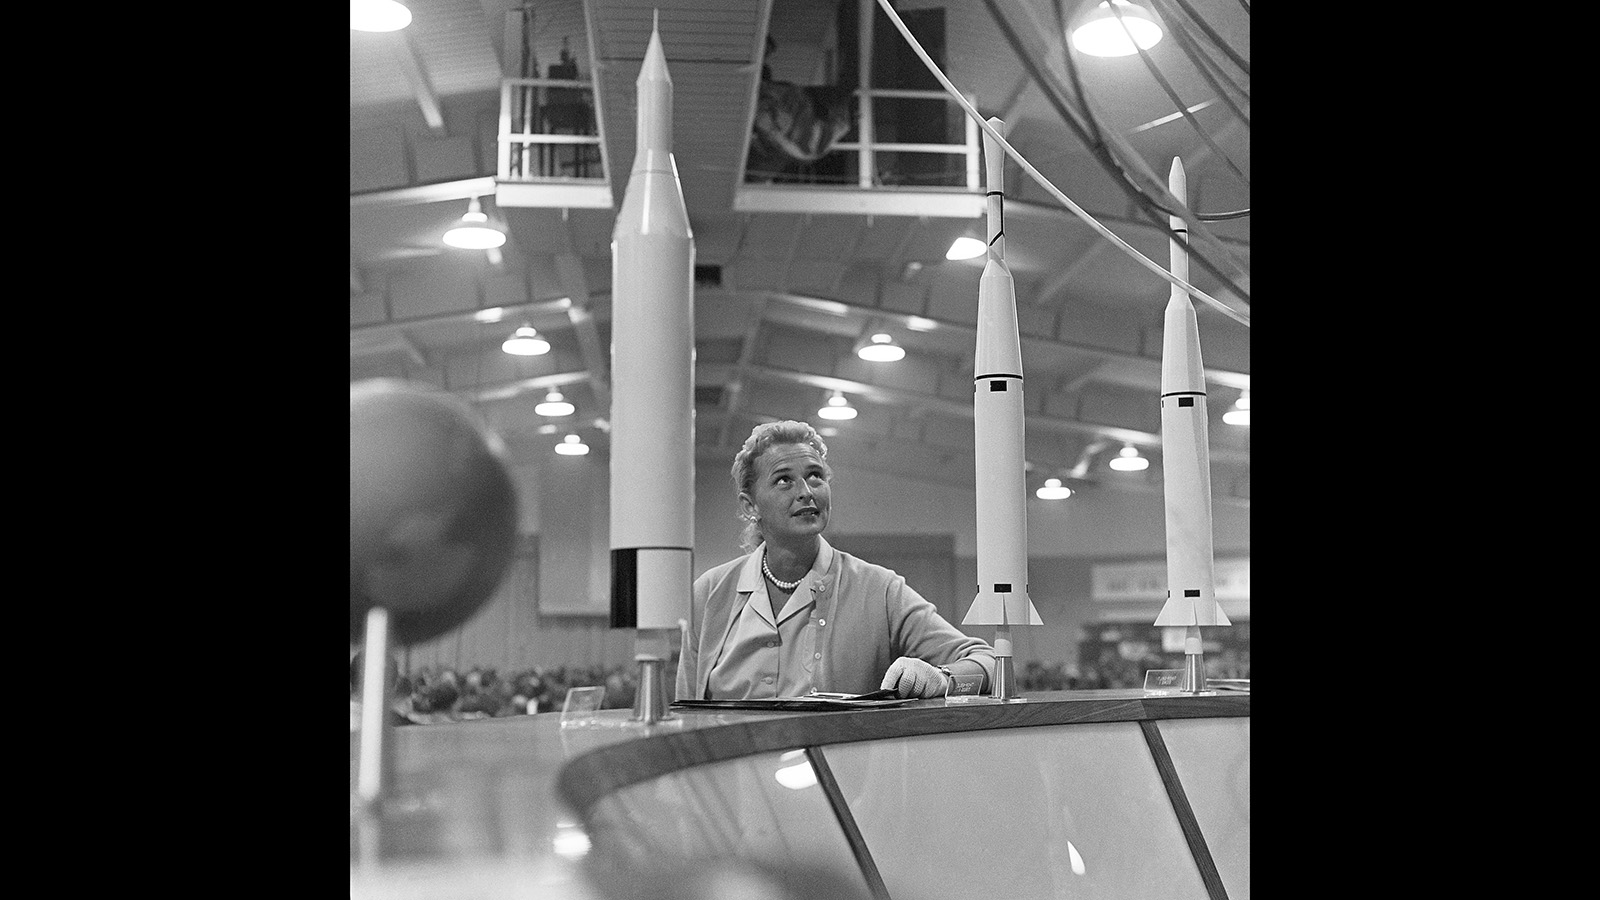 This May 26, 1961, file photo shows Jerrie Cobb, the nation's first female astronaut candidate, with a display of rockets at a national conference where the leading space experts gathered in Tulsa, Okla. Cobb died in Florida at the age of 88 on March 18, 2019. (William P. Straeter/AP)